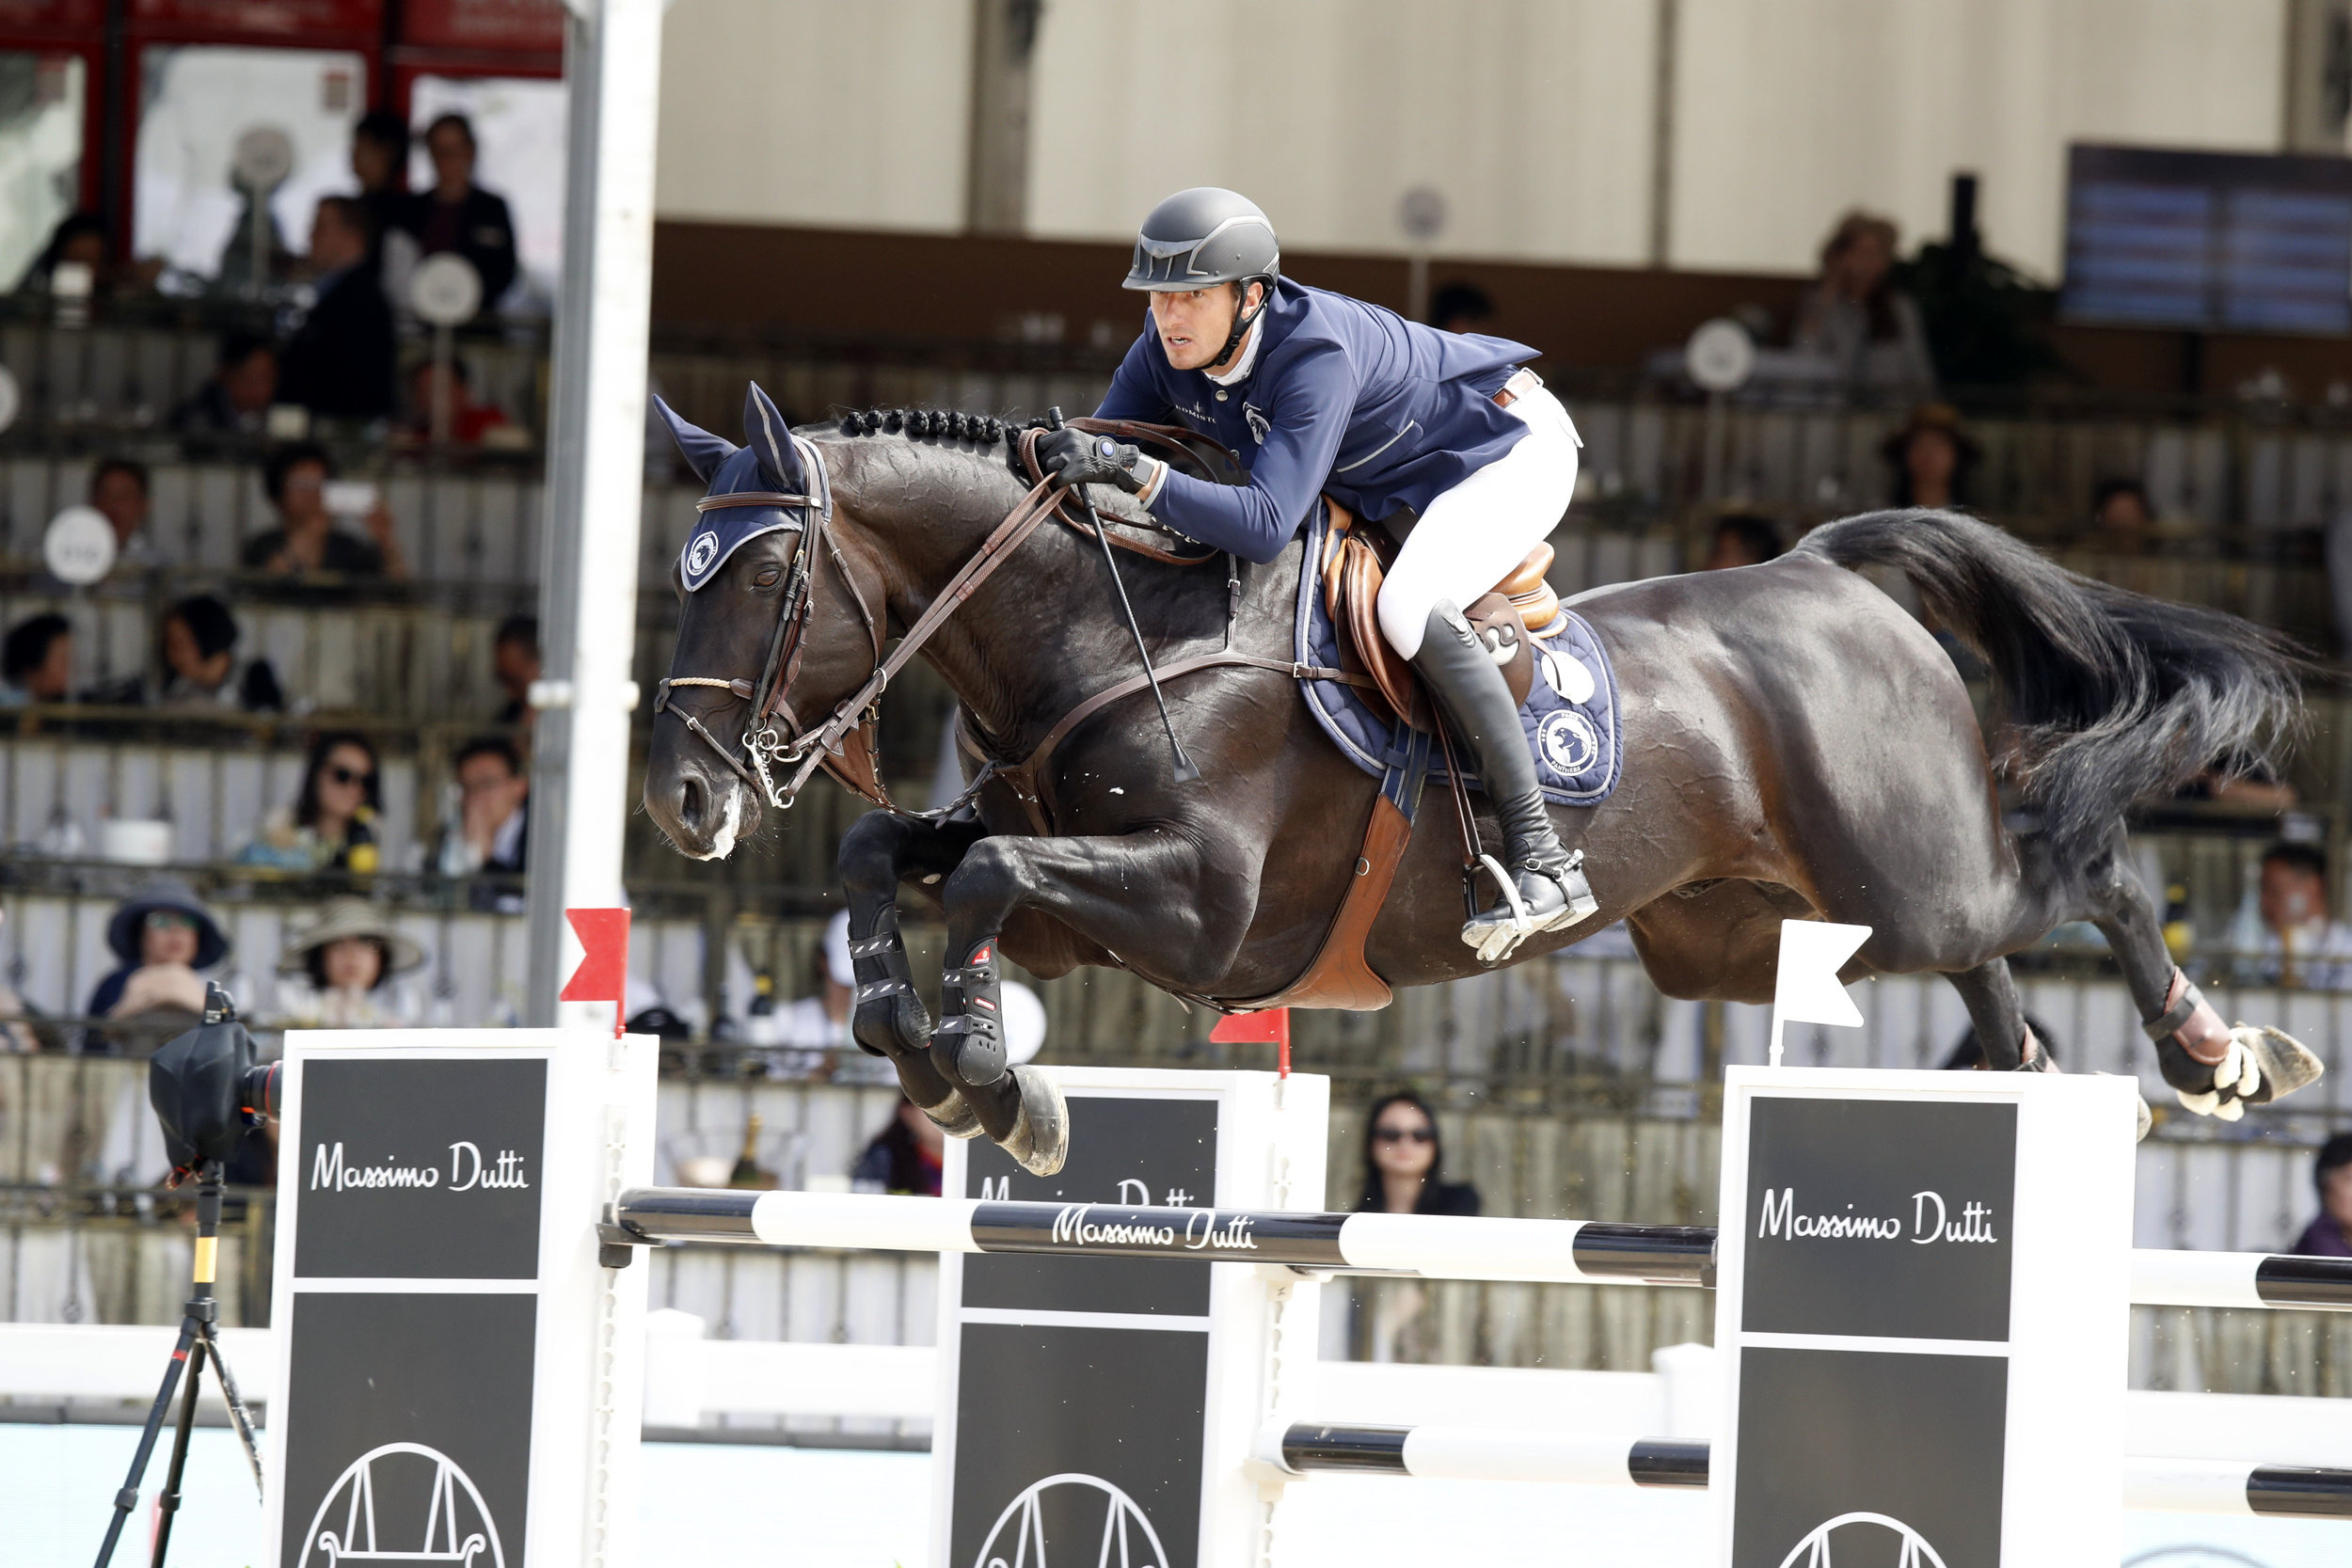 Gregory Wathelet and Iron Man van de Padenborre at Global Champions League of Shanghai 2019. Photography by Stefano Grasso.